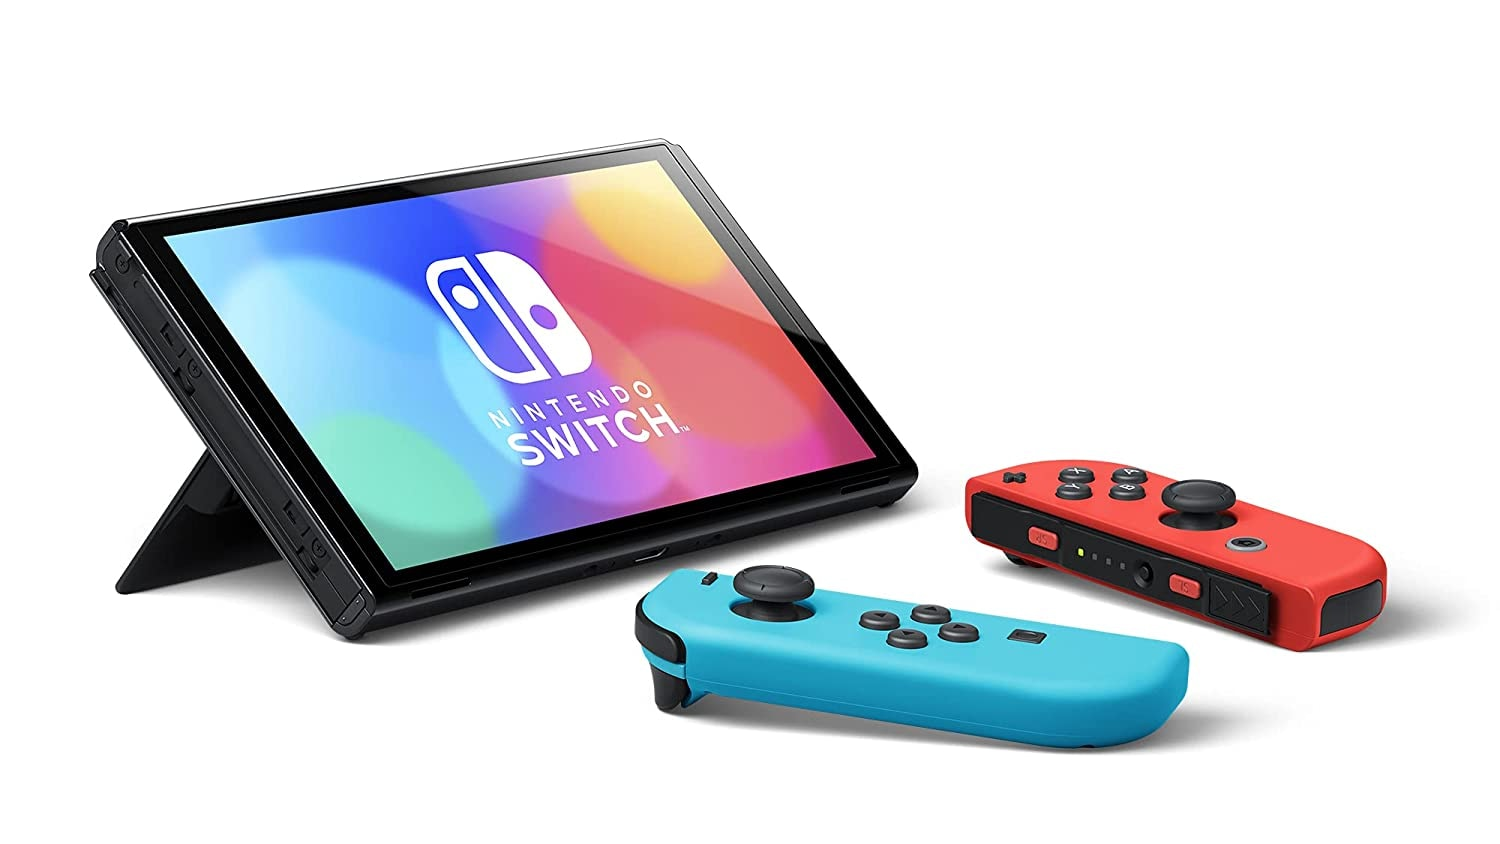 Nintendo Switch OLED Console - Neon Blue/Neon Red - 4